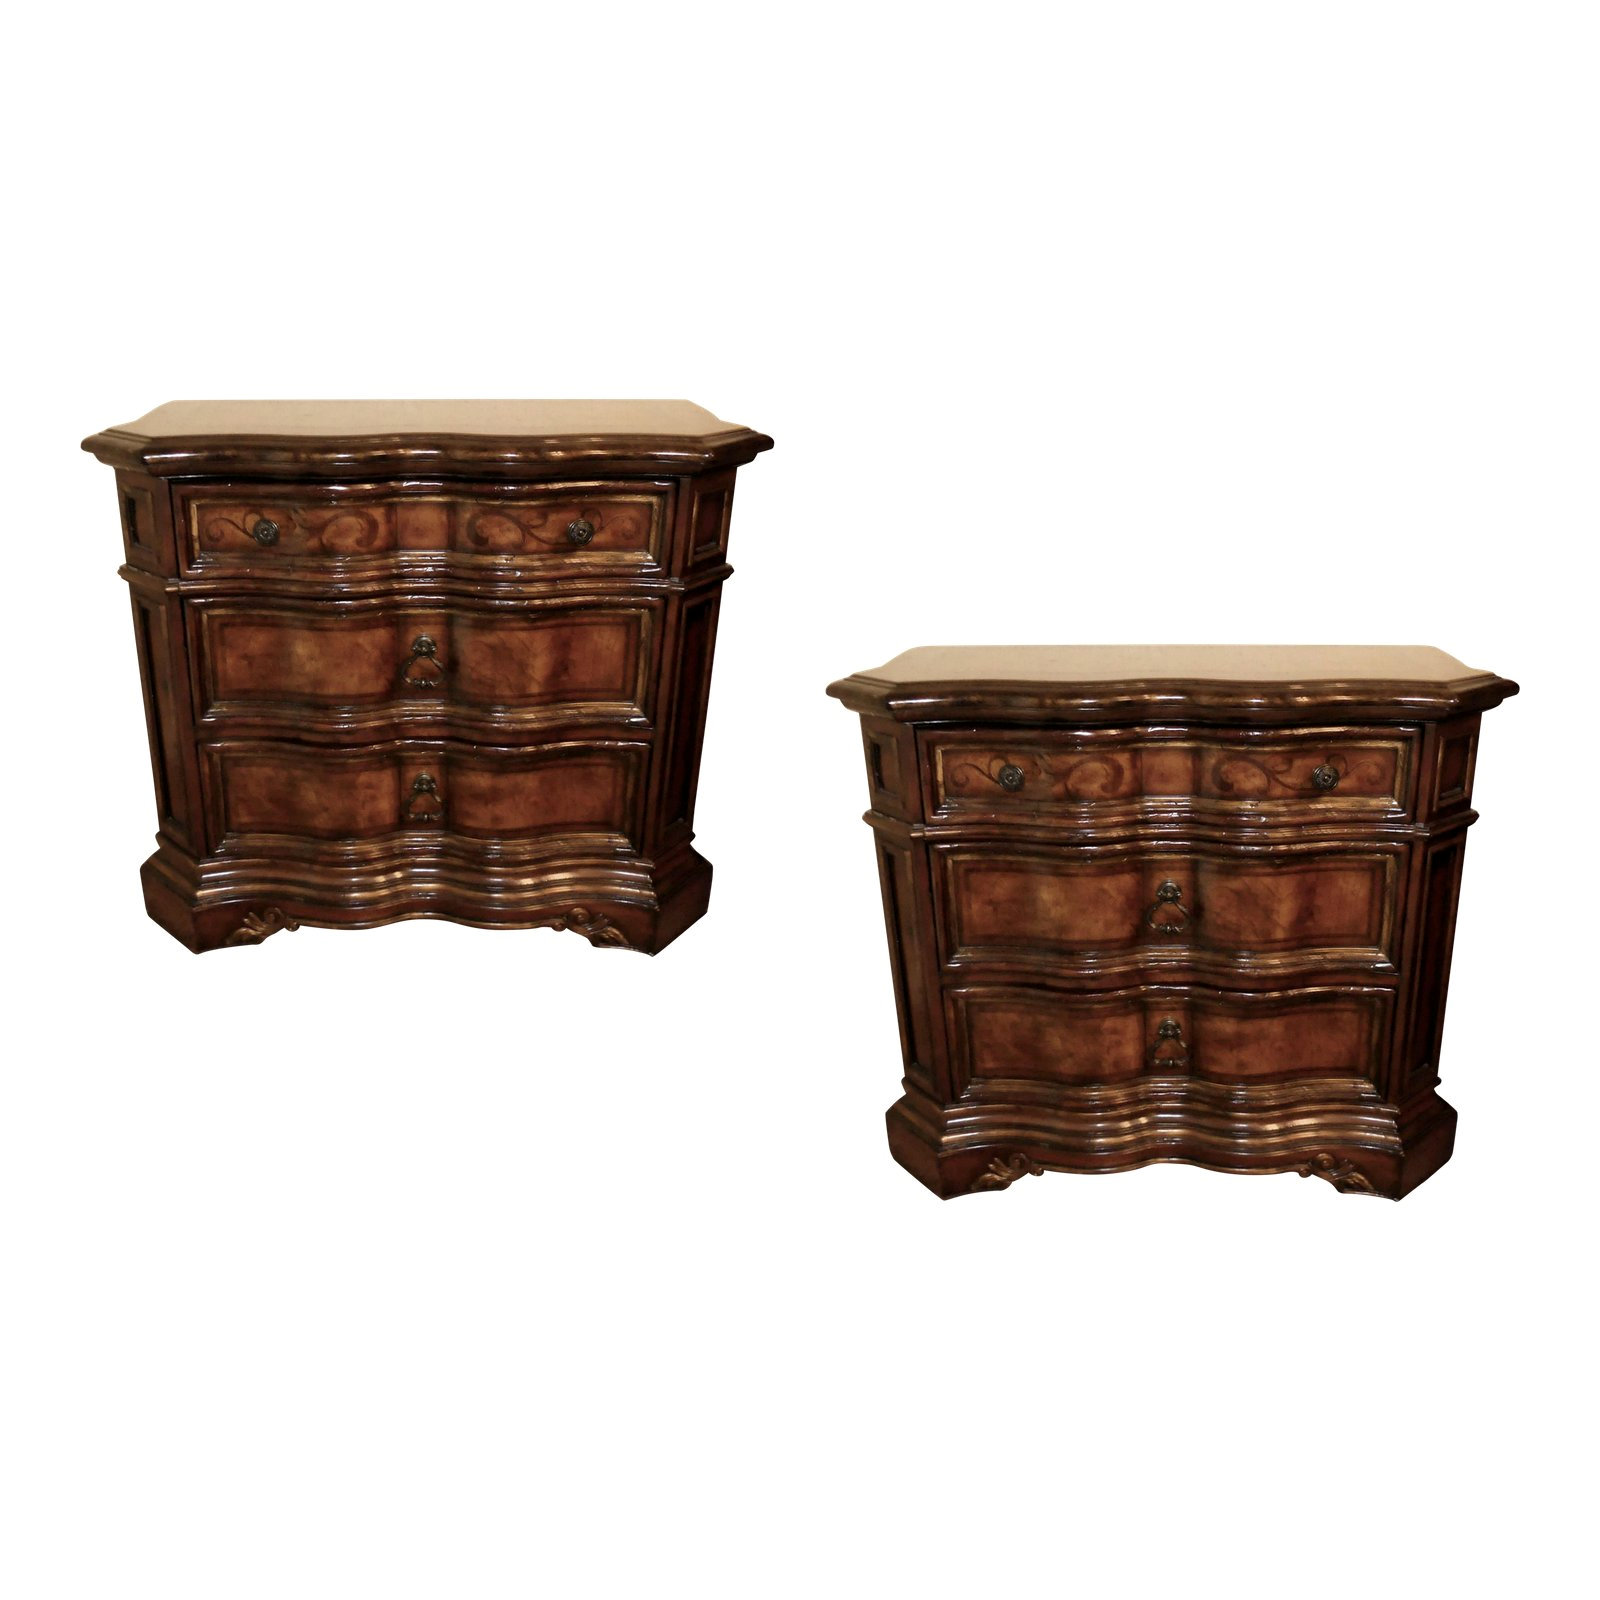 SOLD Pair of 2 Hooker Furniture Beladora Nightstands